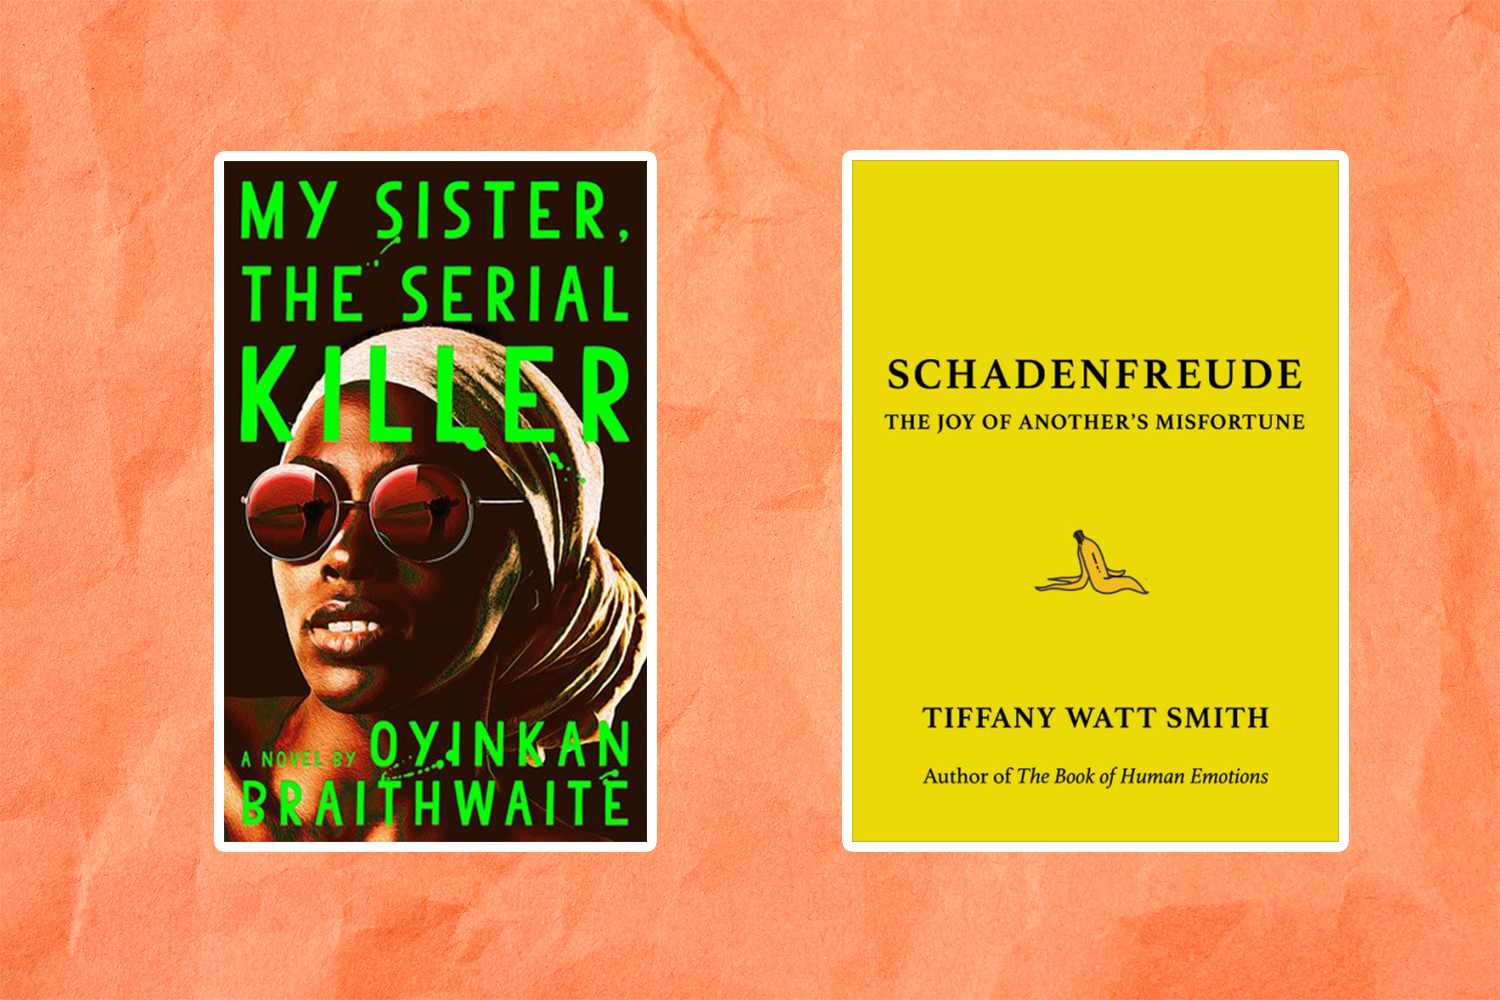 Books coming out this week: <em>My Sister, the Serial Killer</em>, <em>Schadenfreude</em>, and more